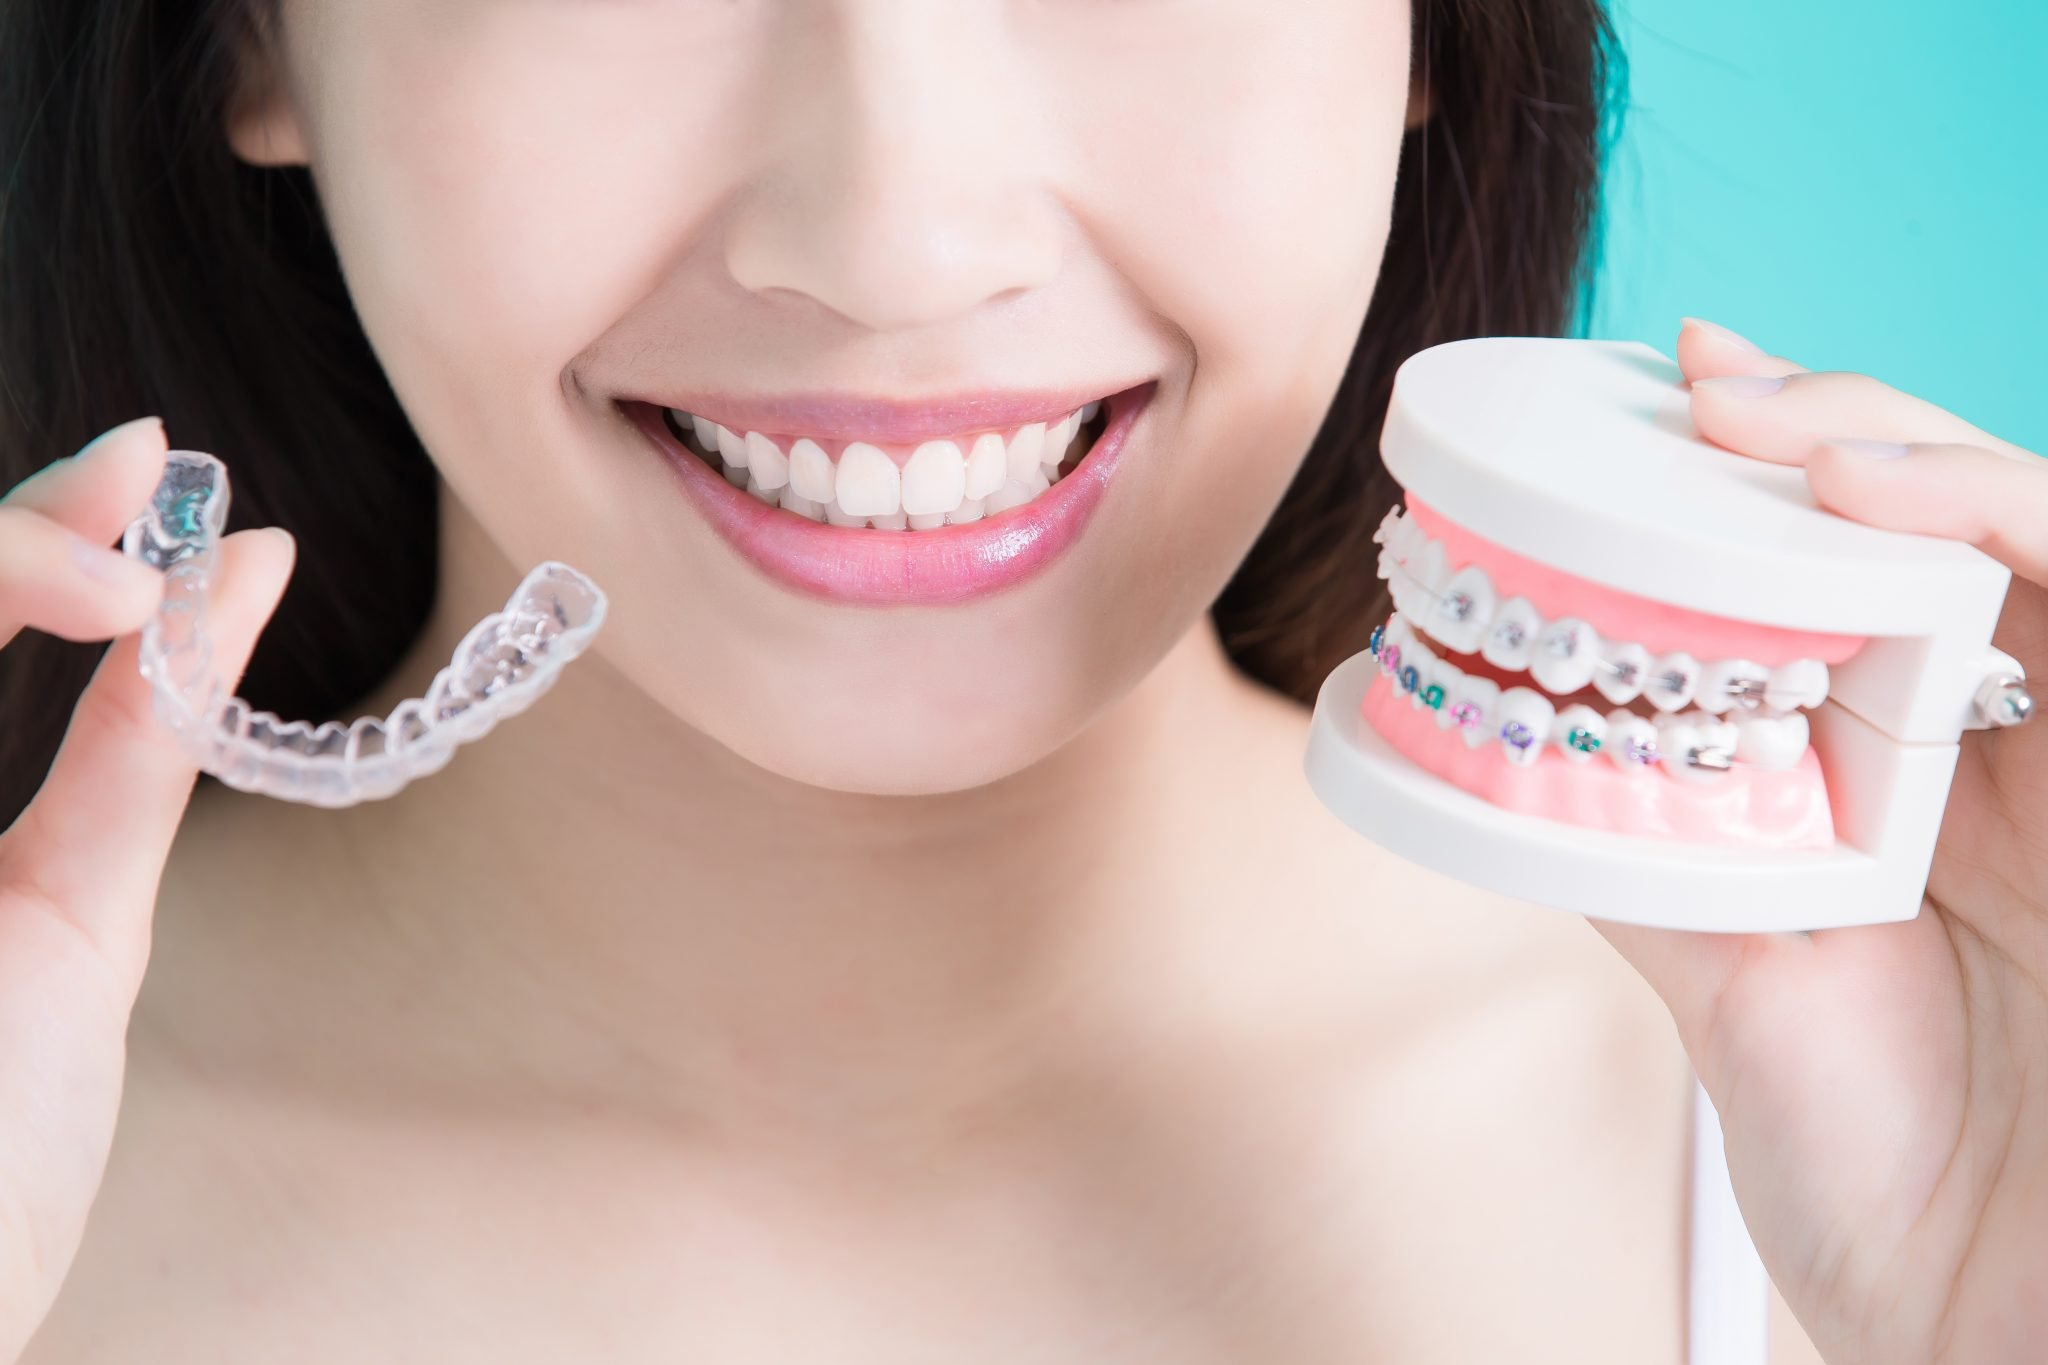 Why One Should Prefer Invisalign Over Braces